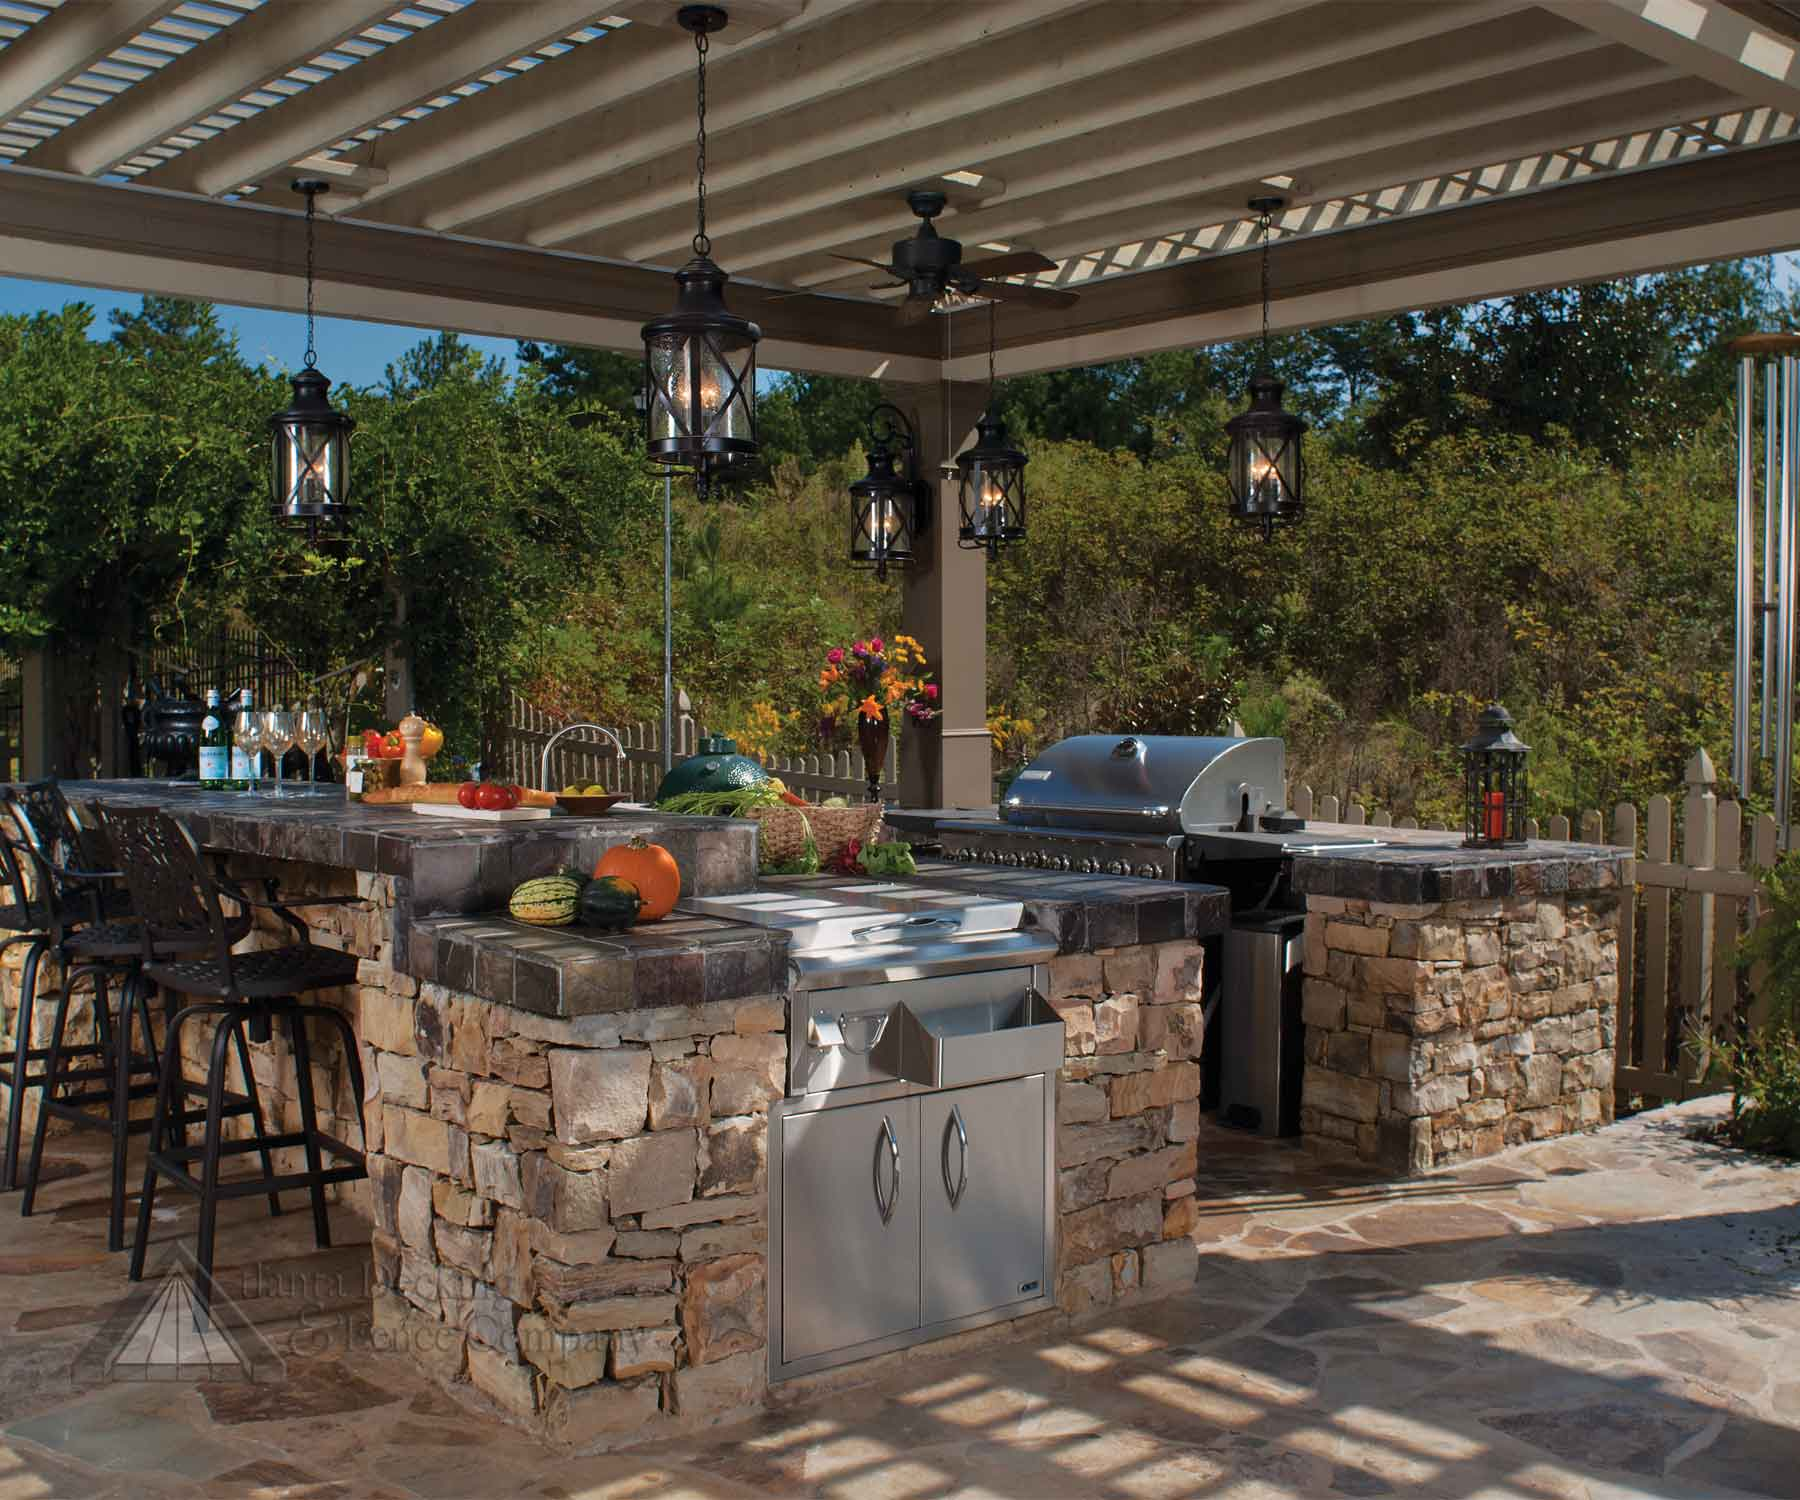 Outdoor Kitchen - Designing The Perfect Backyard Cooking ... on Patio Kitchen Designs id=79816